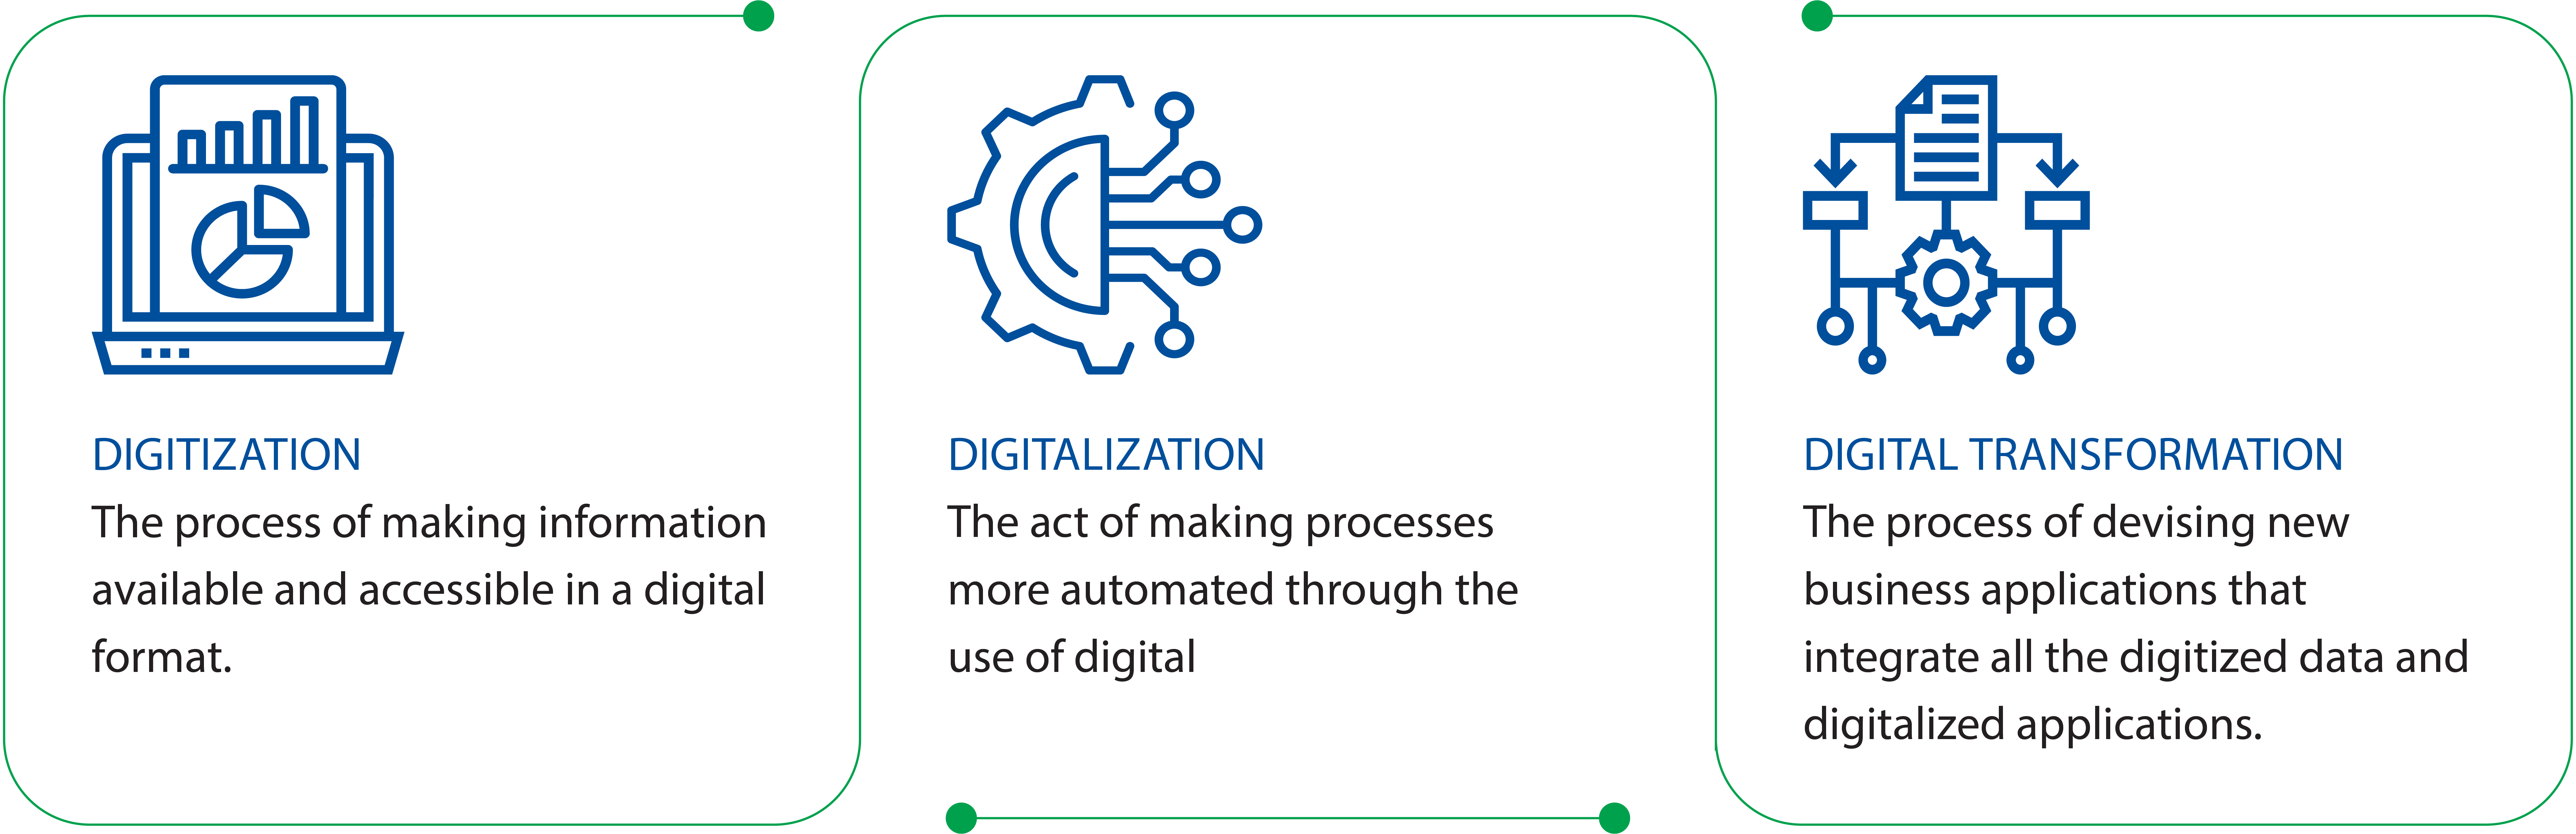 Digitization vs Digitalization vs Digital Transformation